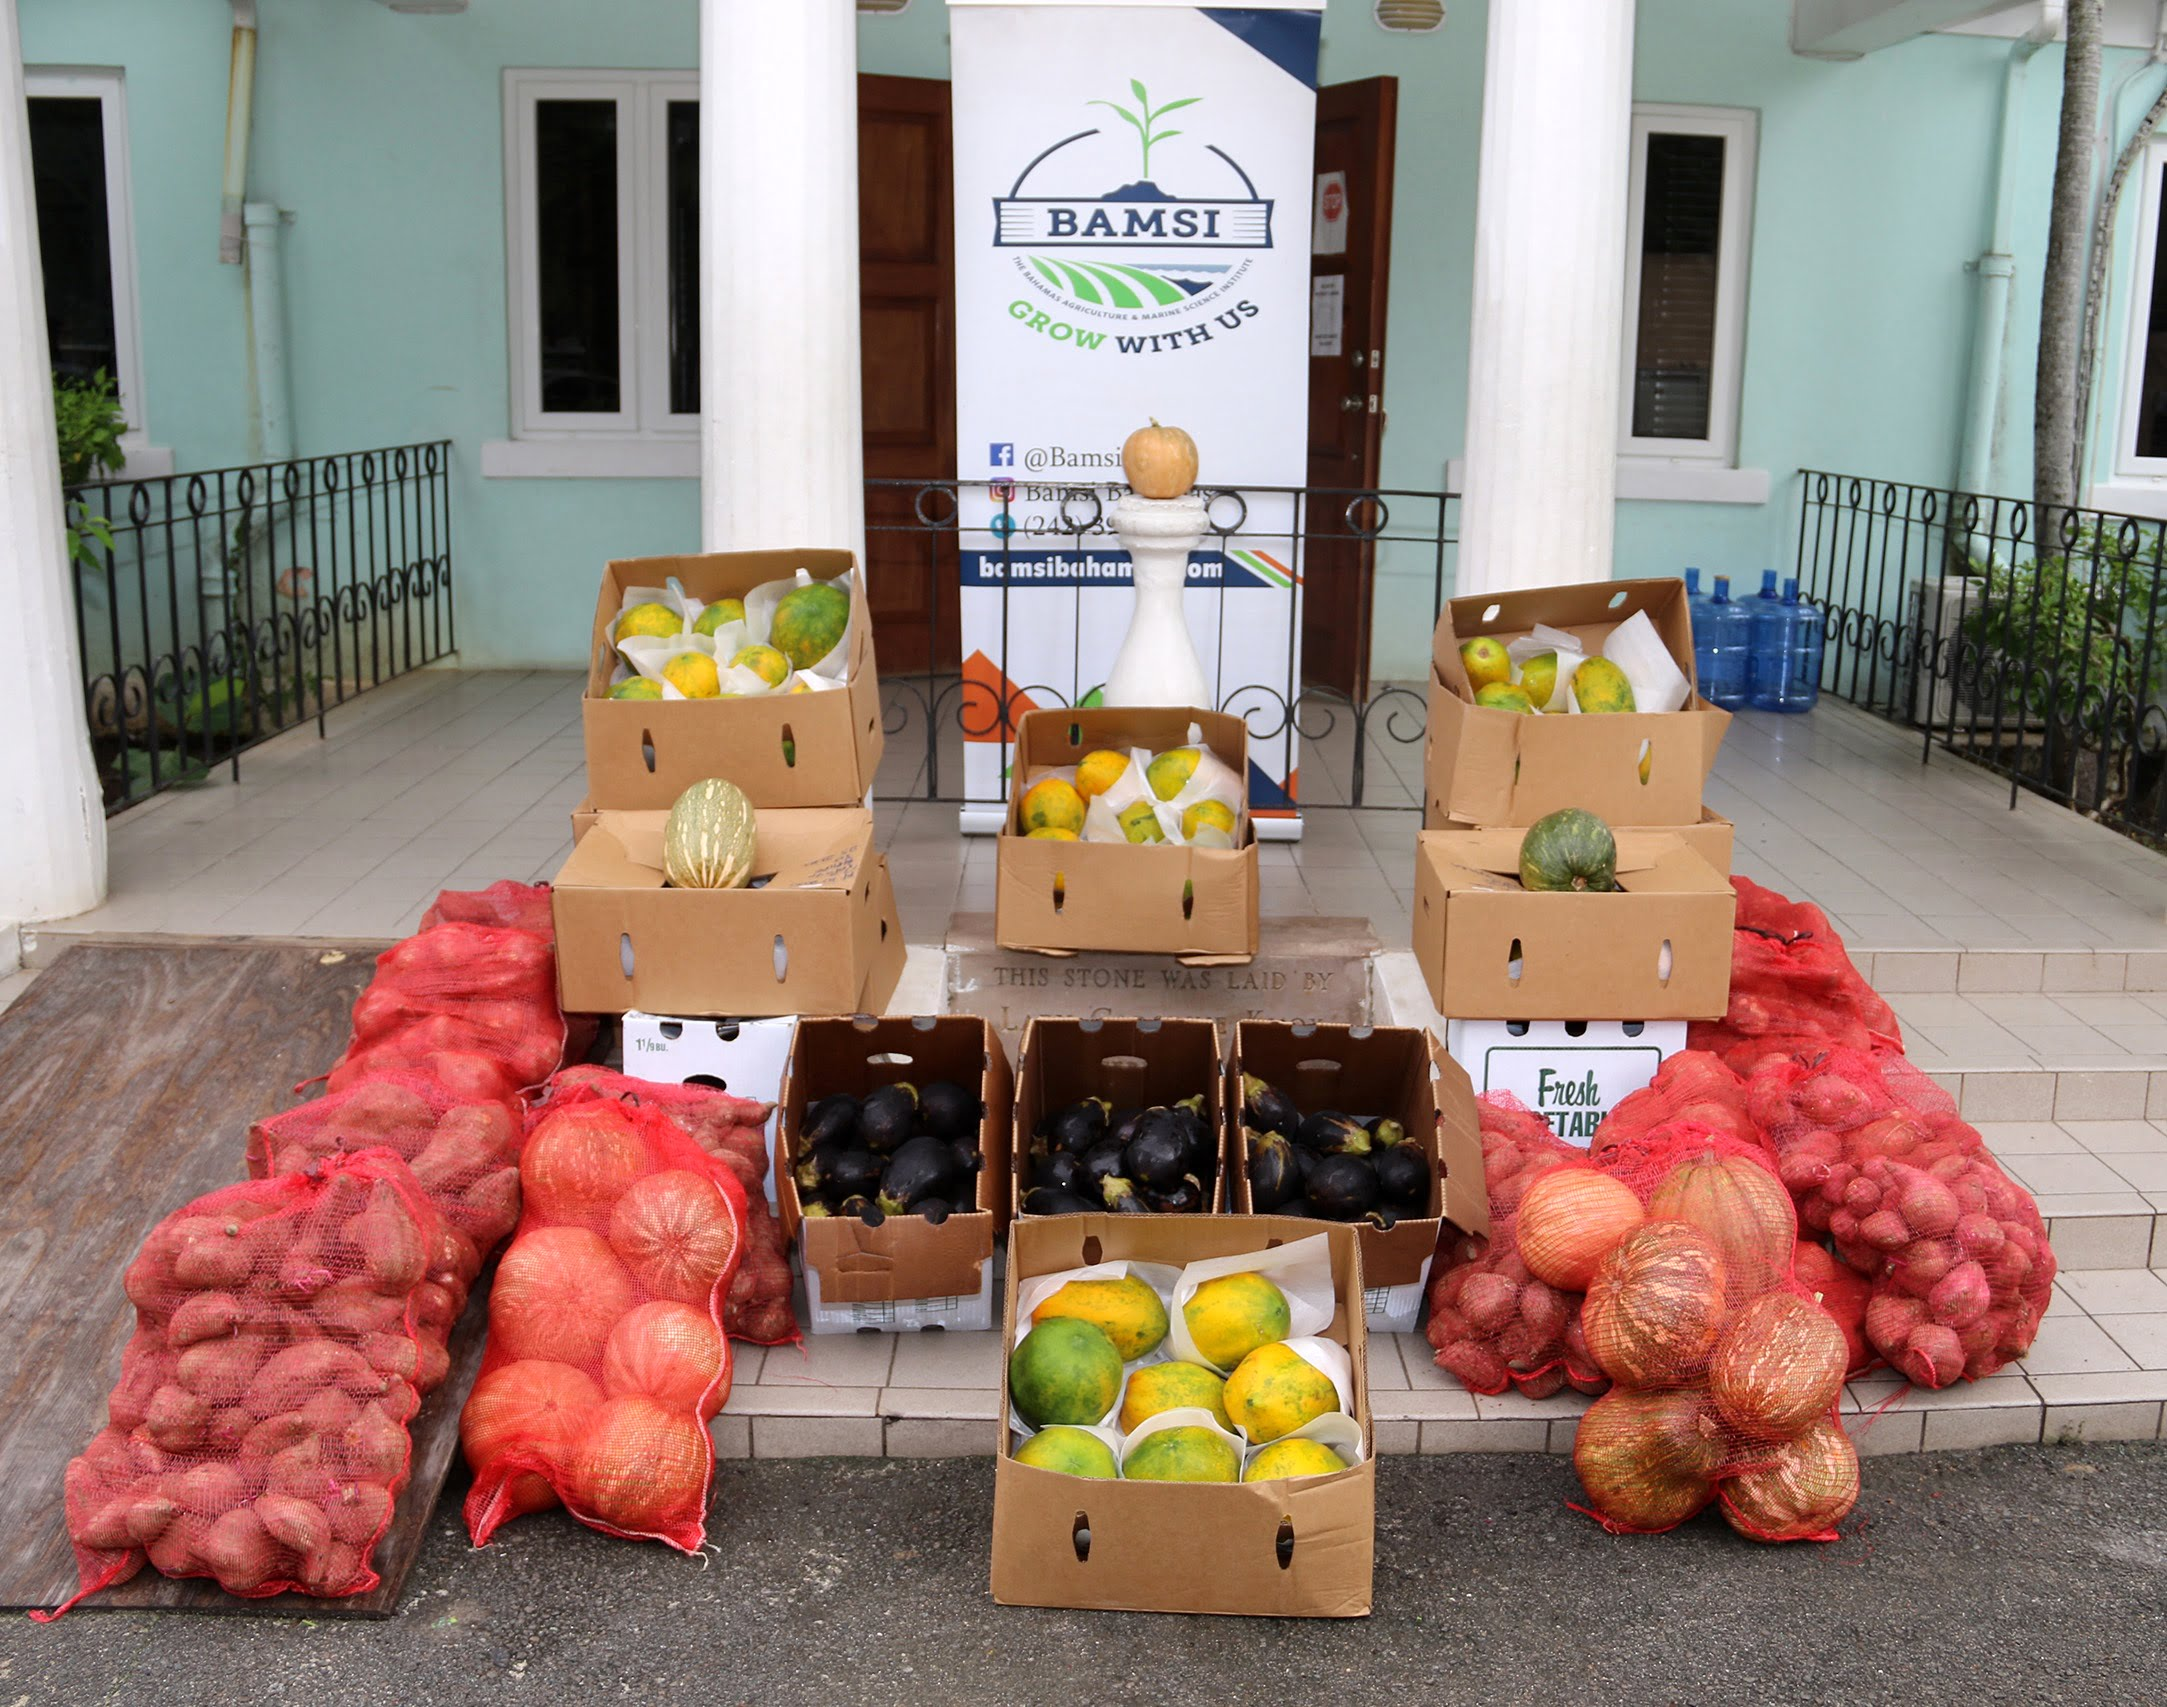 Harnessing the gift of food: BAMSI donates produce to Ranfurly Home